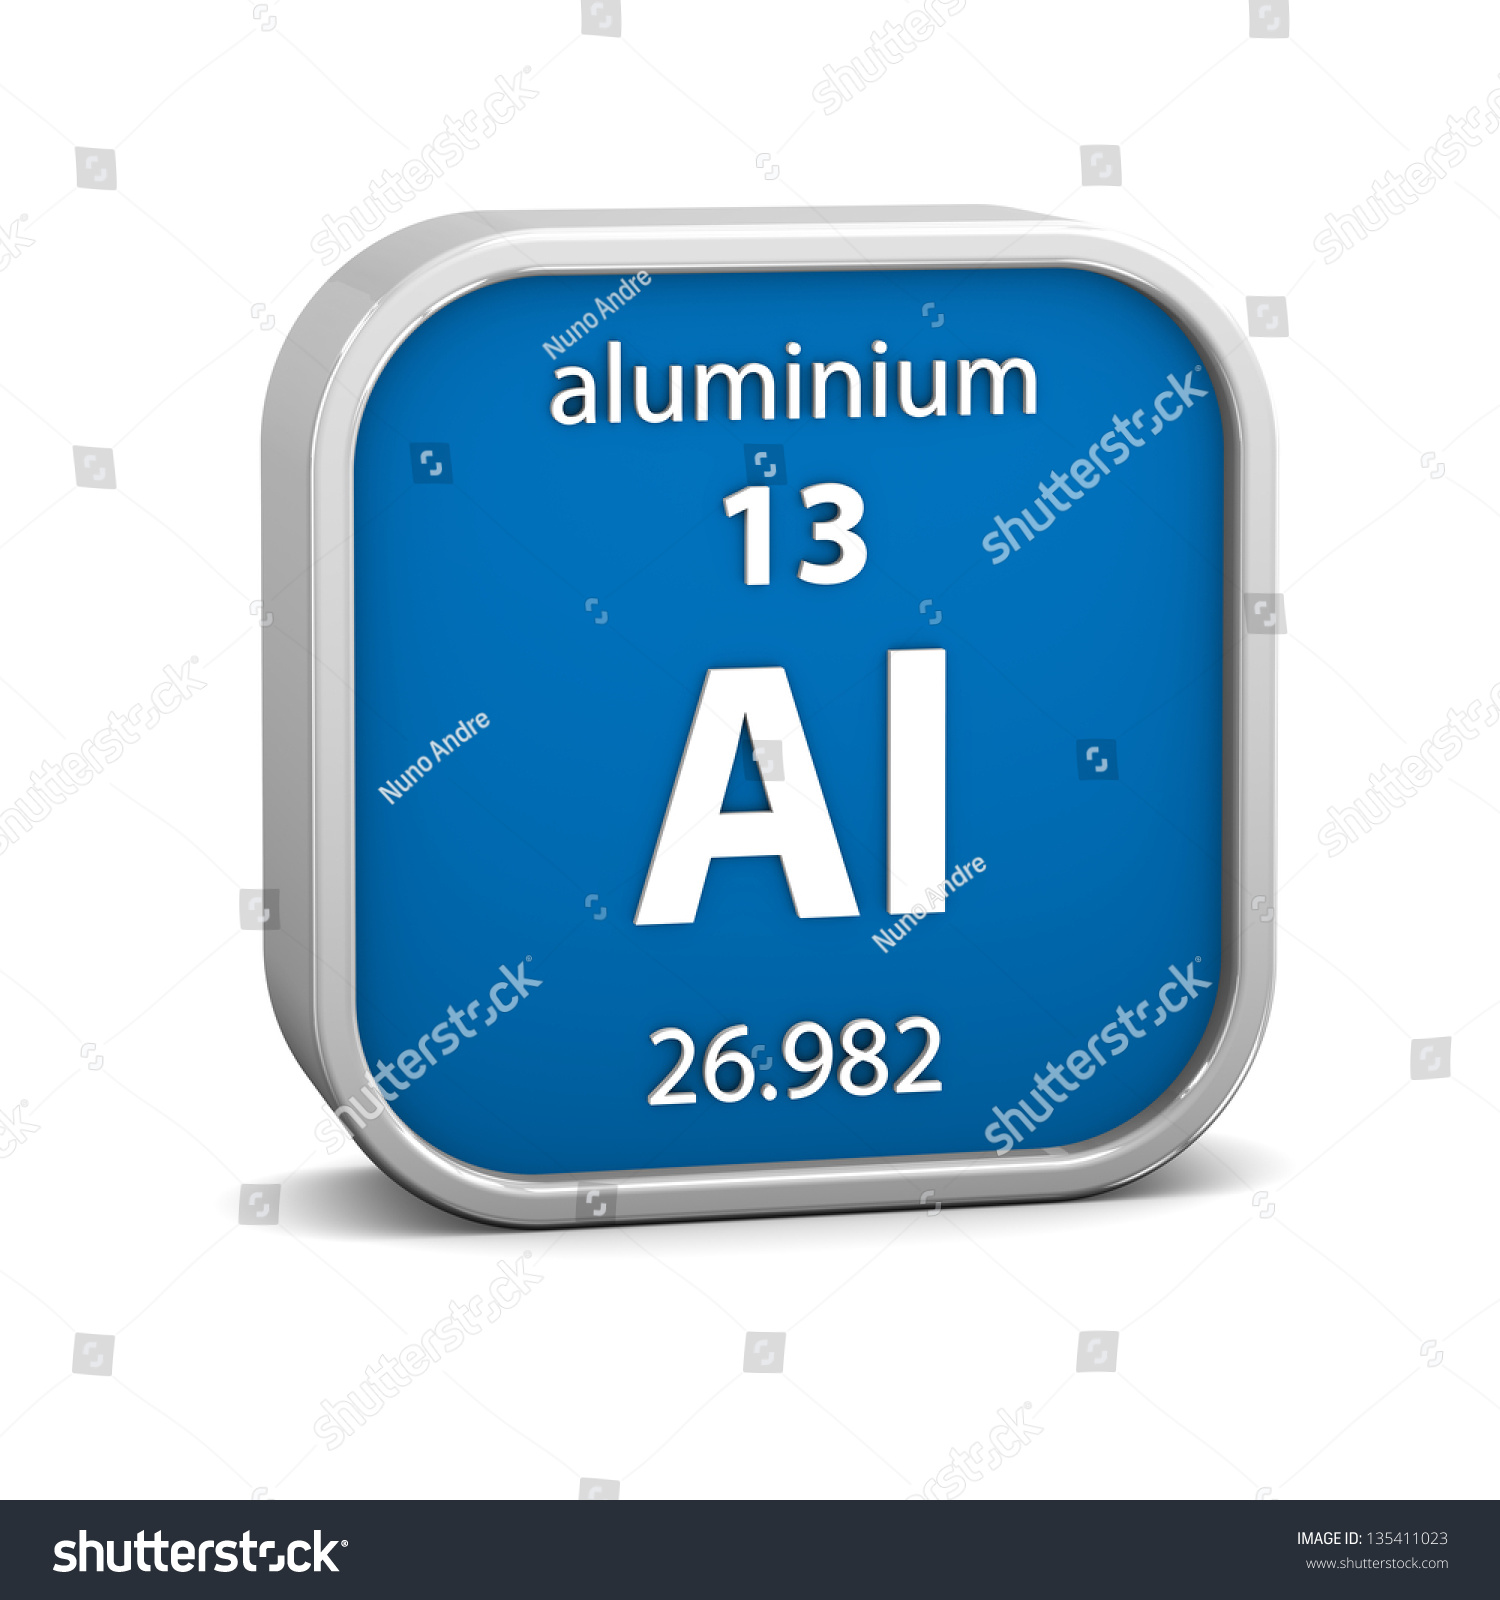 Periodic table uh gallery periodic table images uh periodic table image collections periodic table images uh periodic table images periodic table images uh gamestrikefo Choice Image